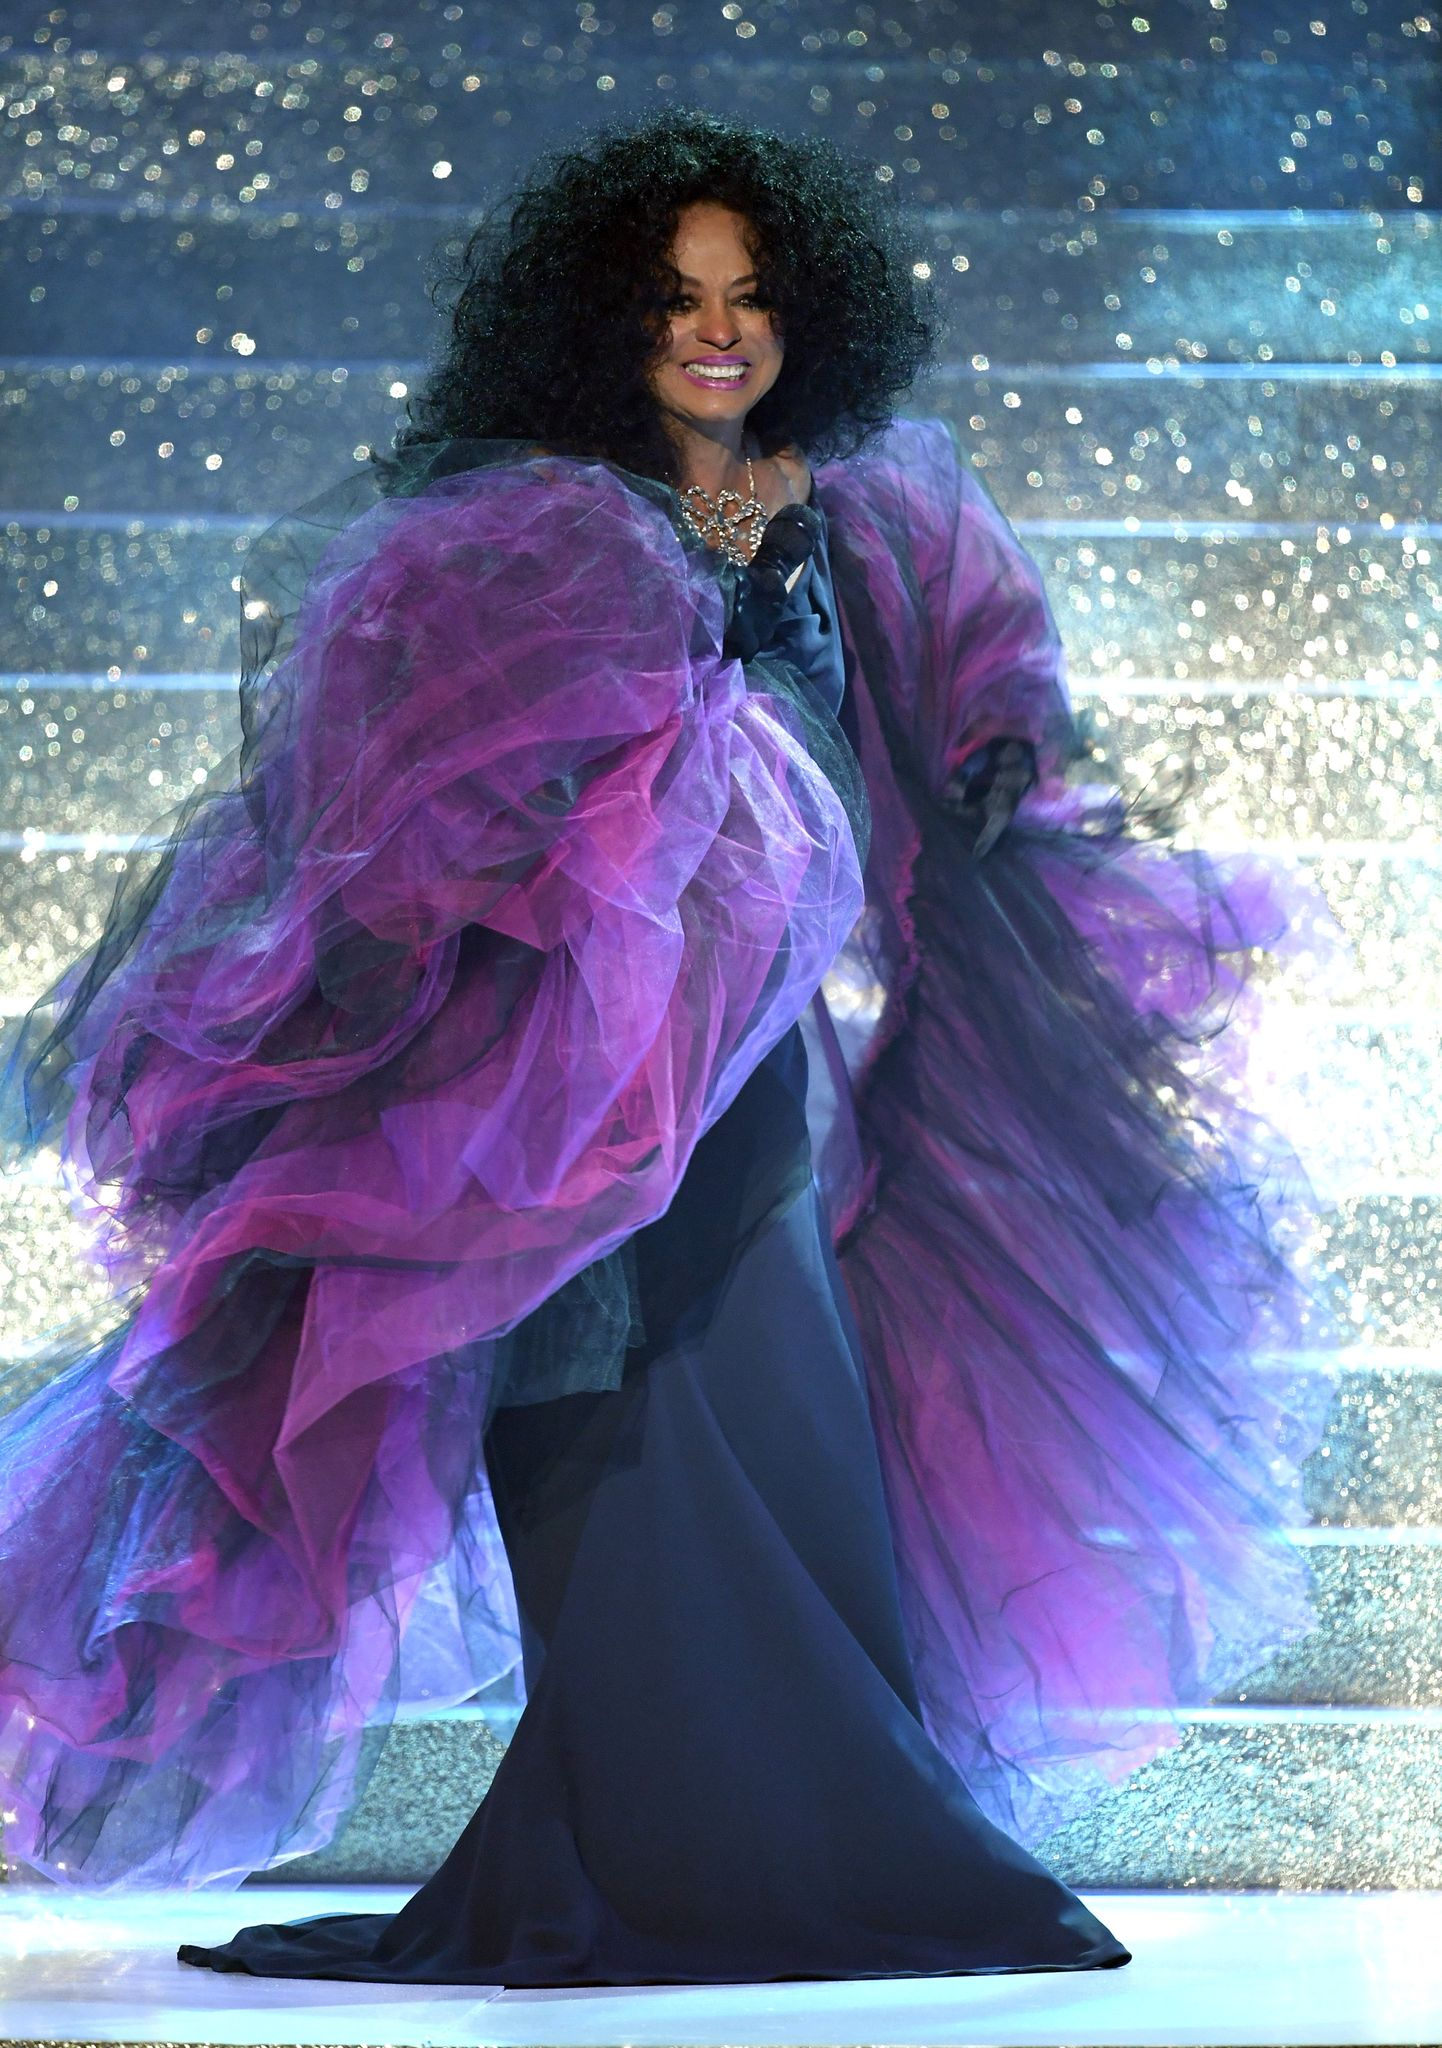 Diana Ross performing at the 2017 American Music Awards in 2017 in Los Angeles, California | Source: Getty Images